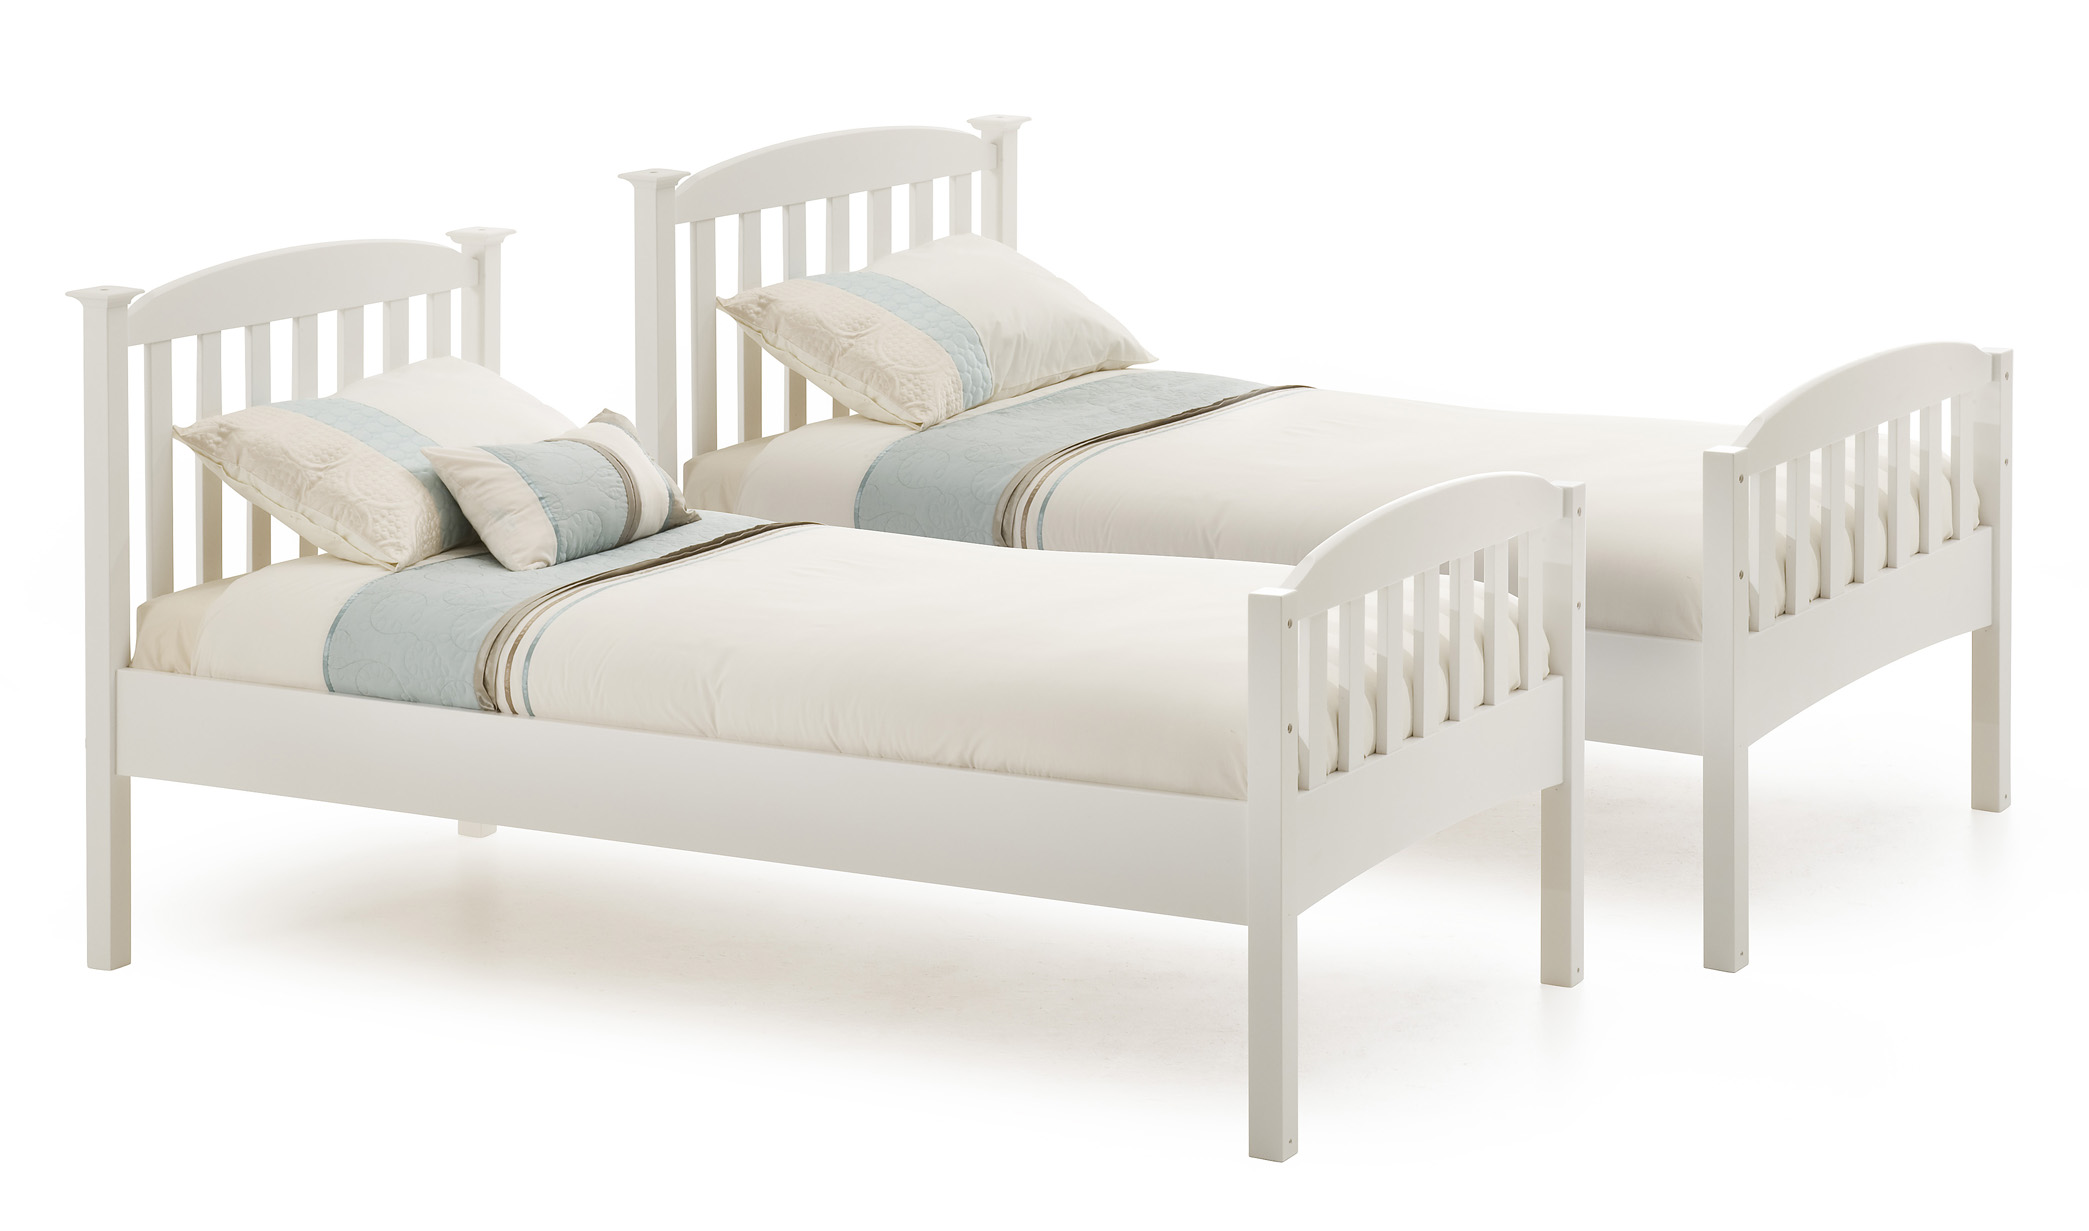 White Bed Frame 3ft 6ft Wooden Serene Santo Single Small